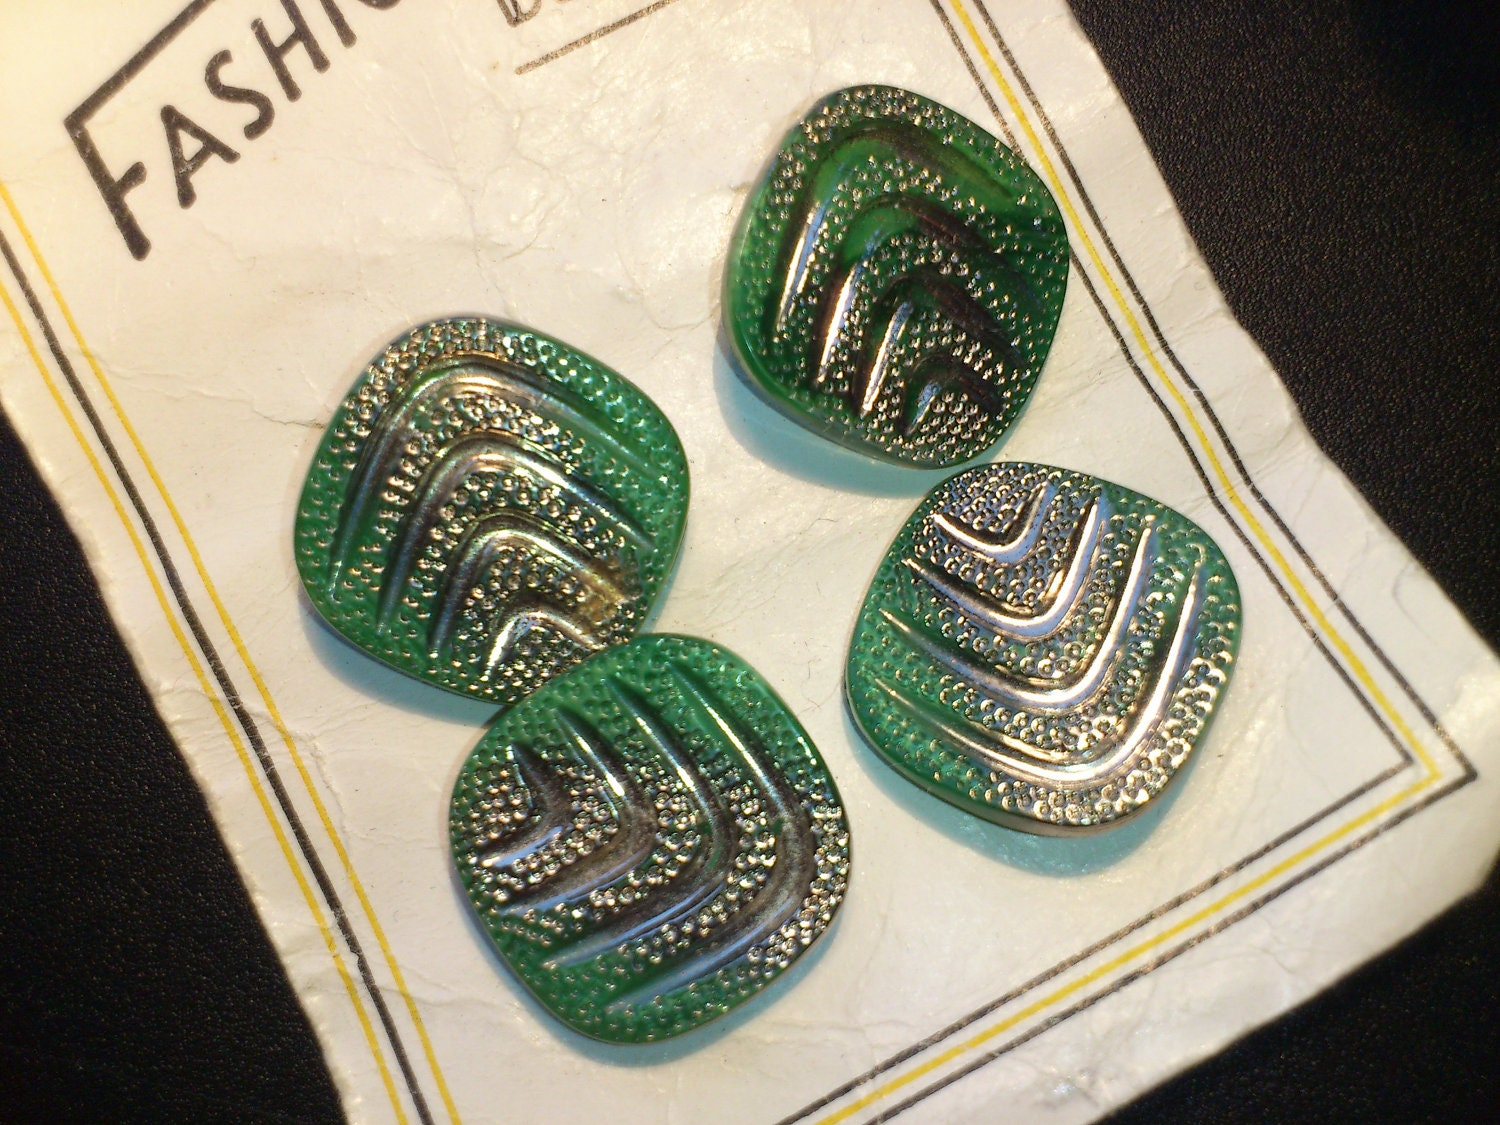 Vintage green and silver glass buttons